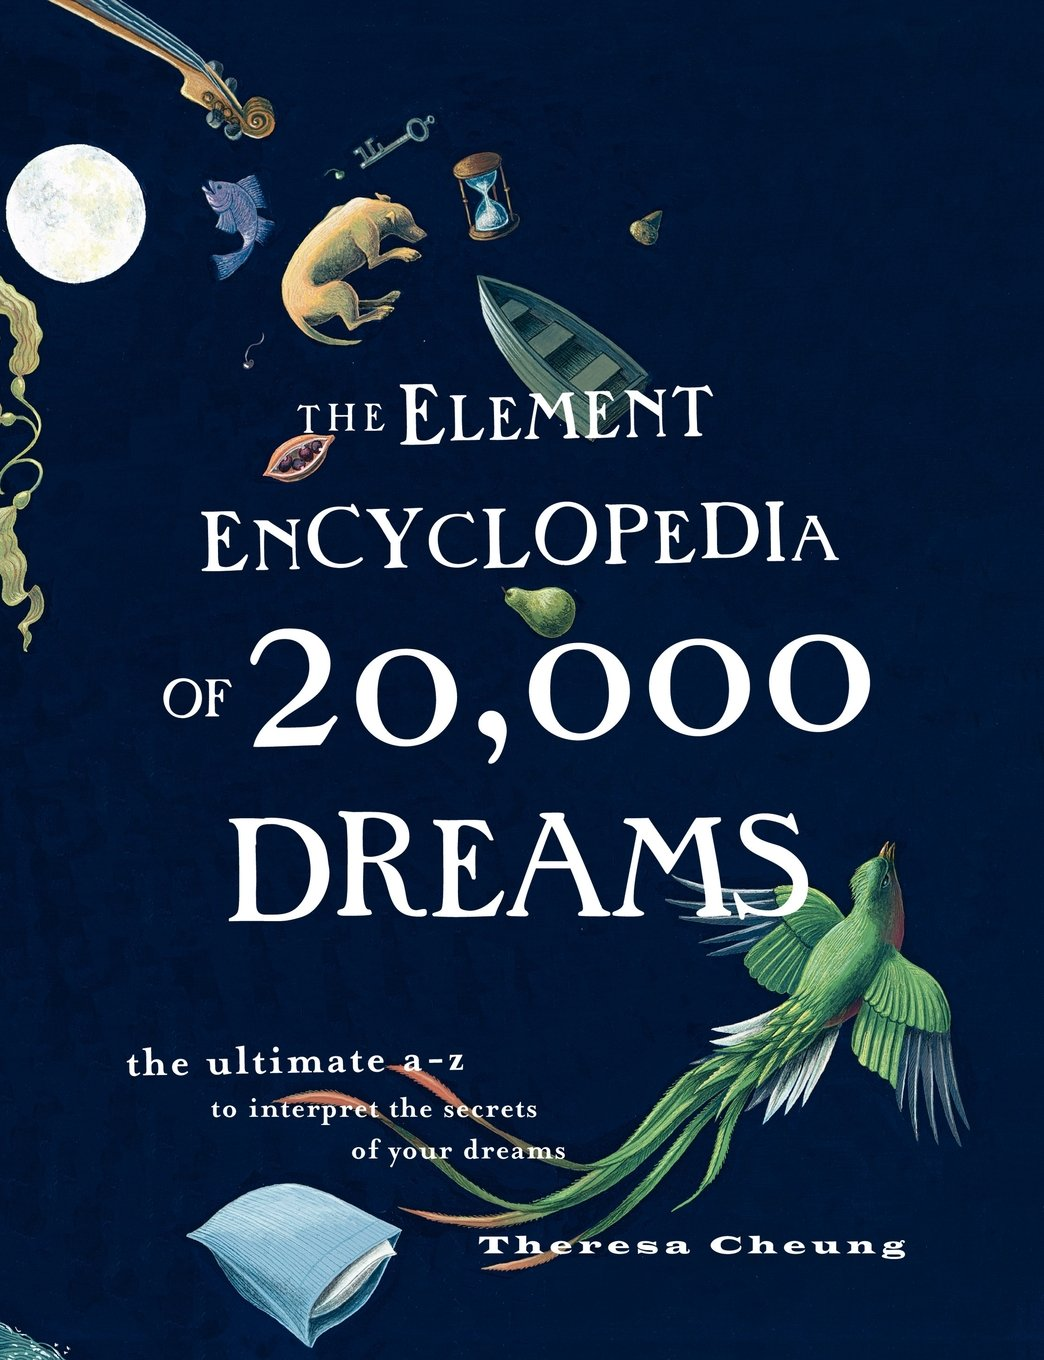 element encyclopedia dreams